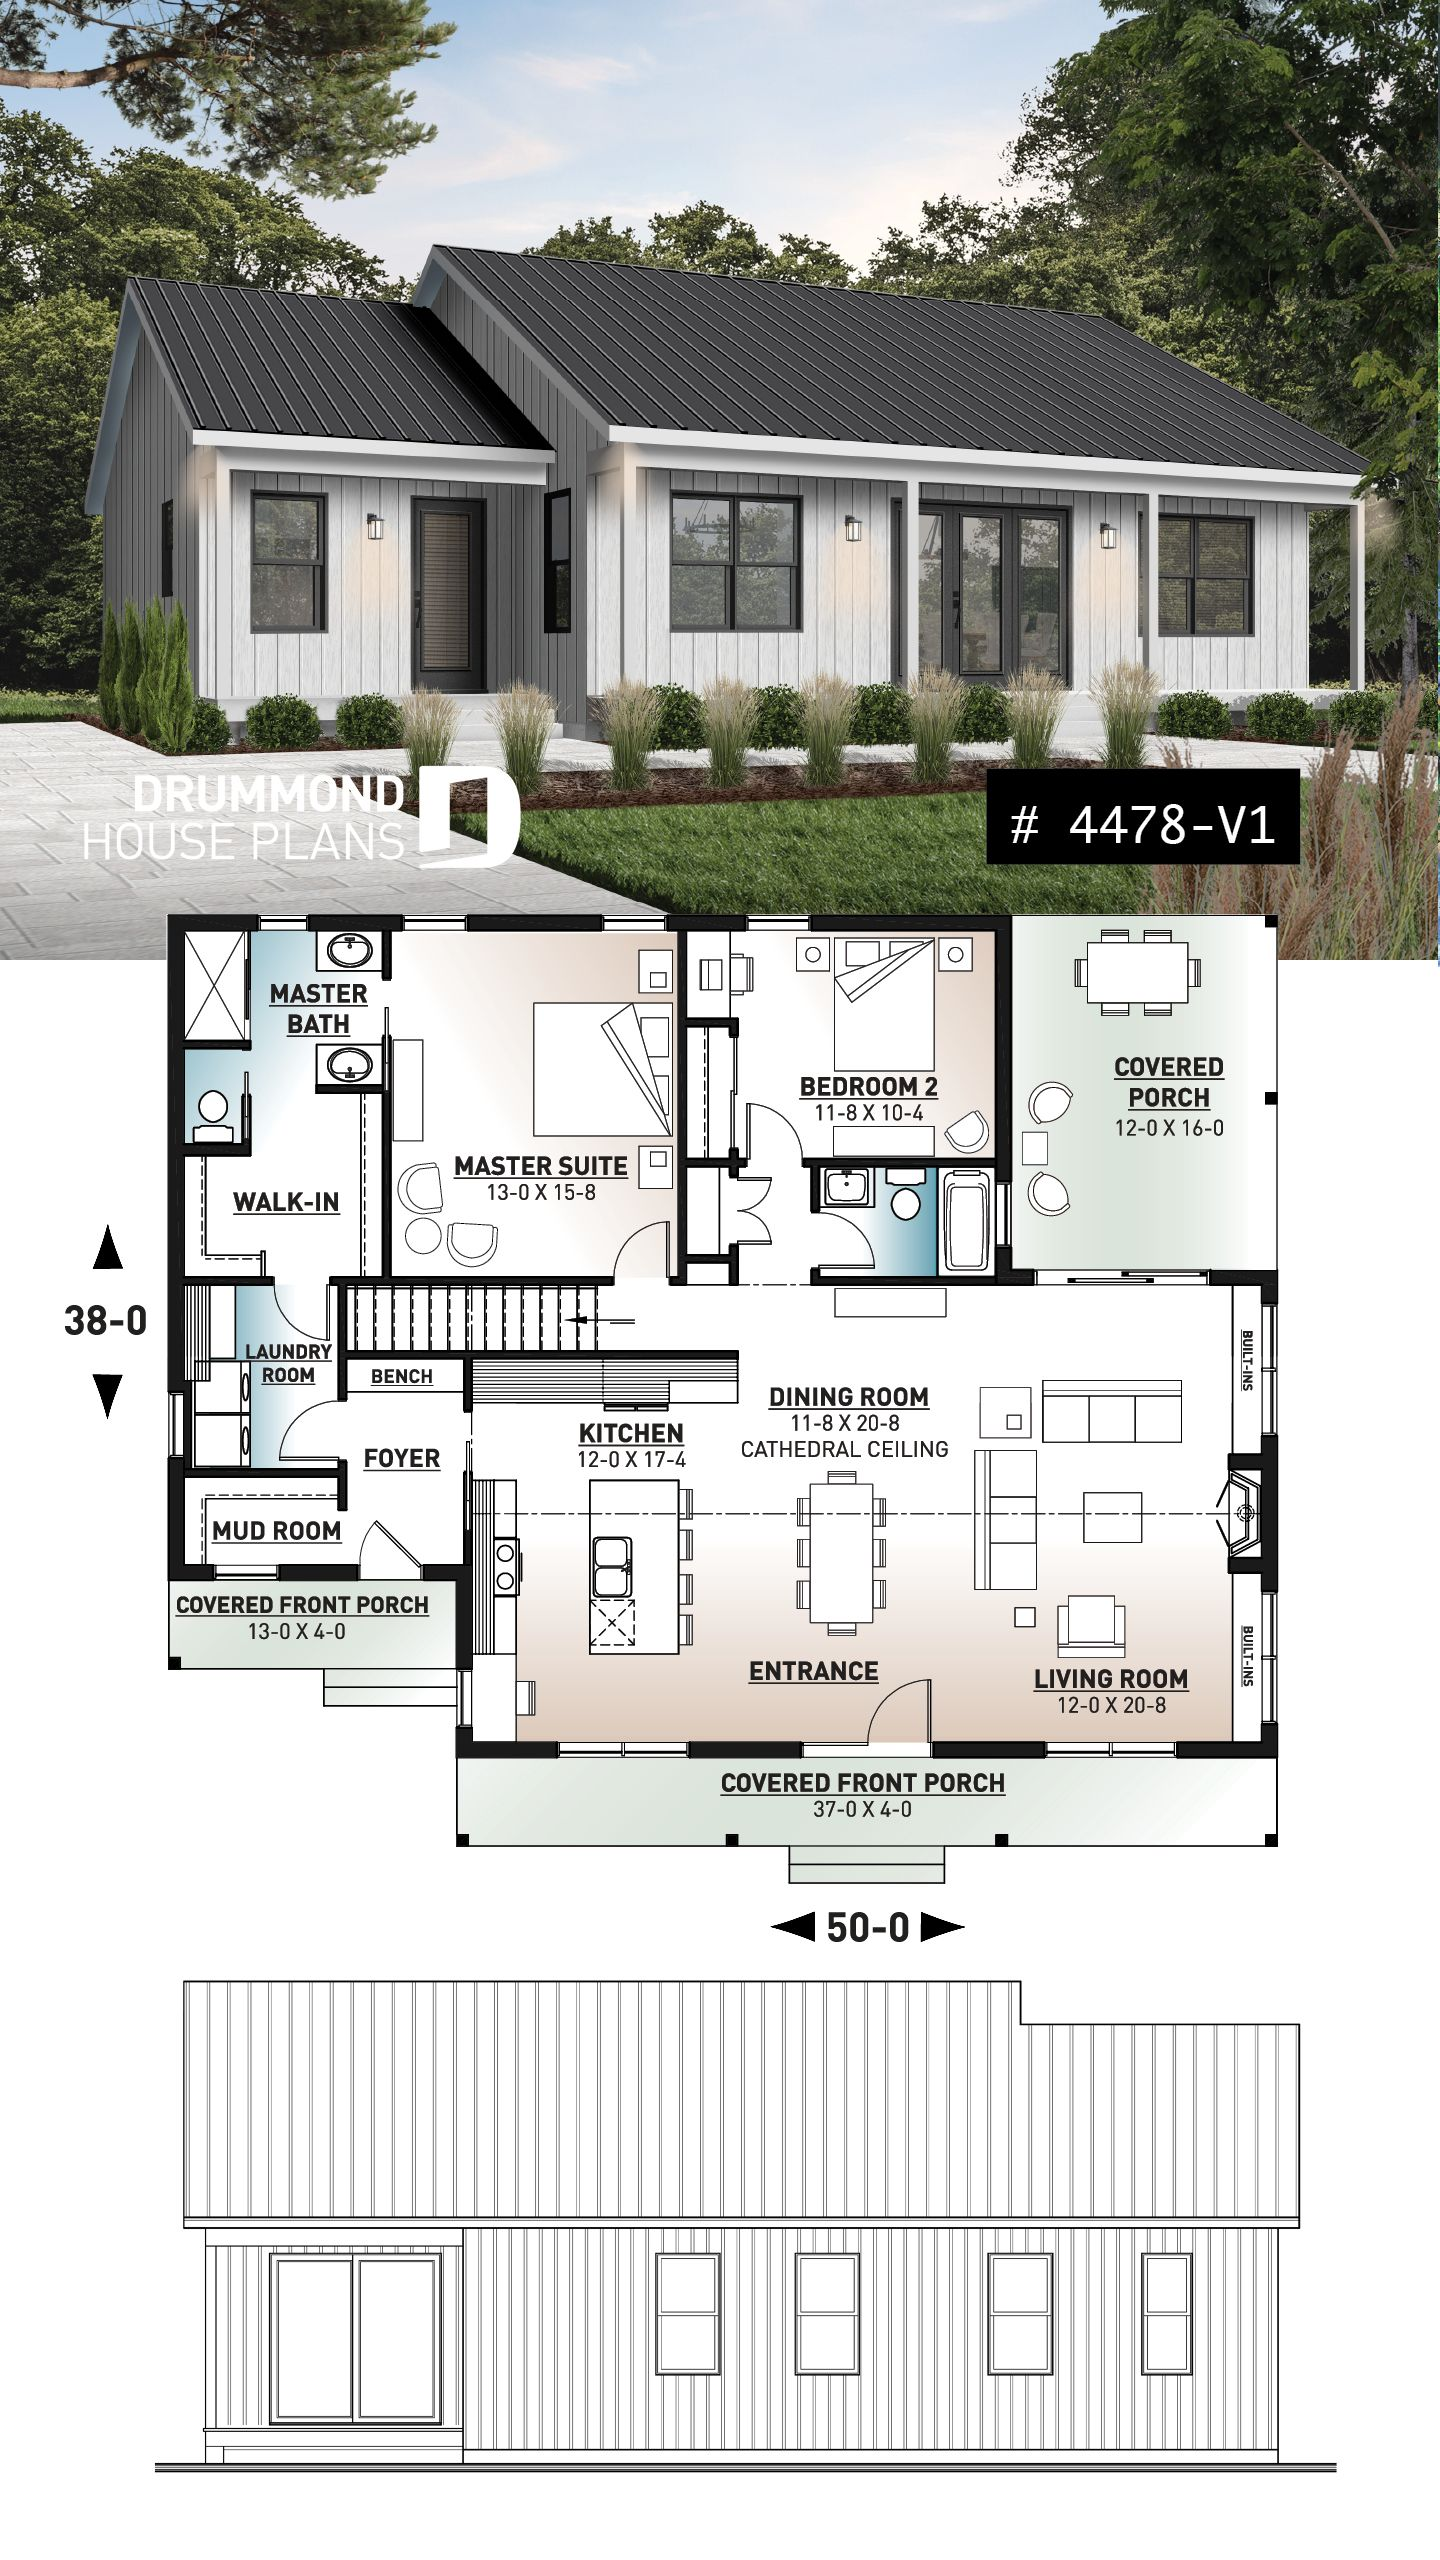 Discover The Plan 4478 V1 Beauford 2 Which Will Please You For Its 2 Bedrooms And For Its Ranch Styles House Plans Farmhouse Drummond House Plans Dream House Plans